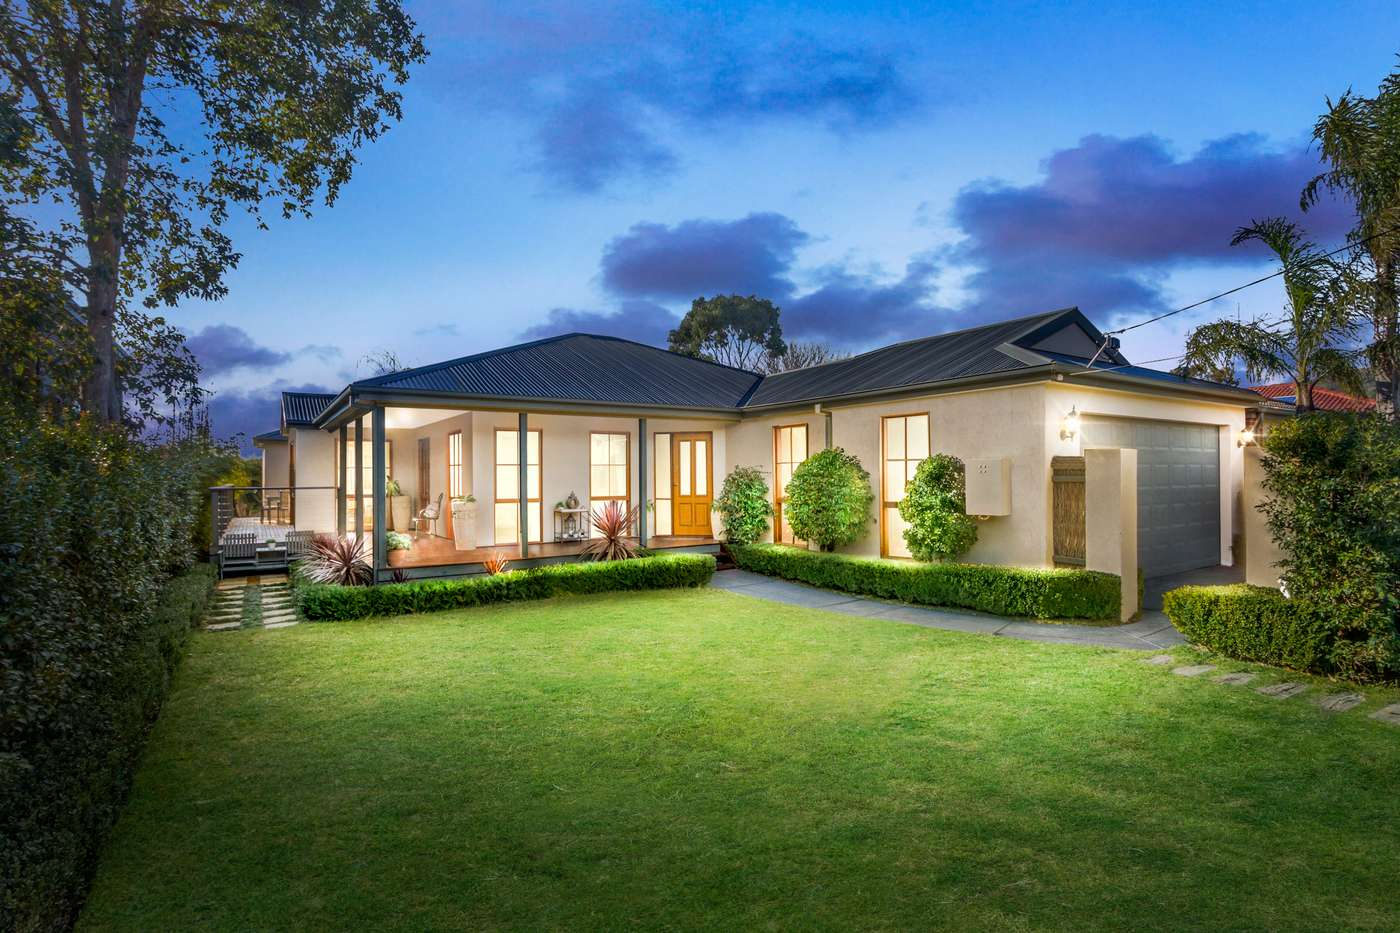 Main view of Homely house listing, 20 Herman Street, Rosebud, VIC 3939